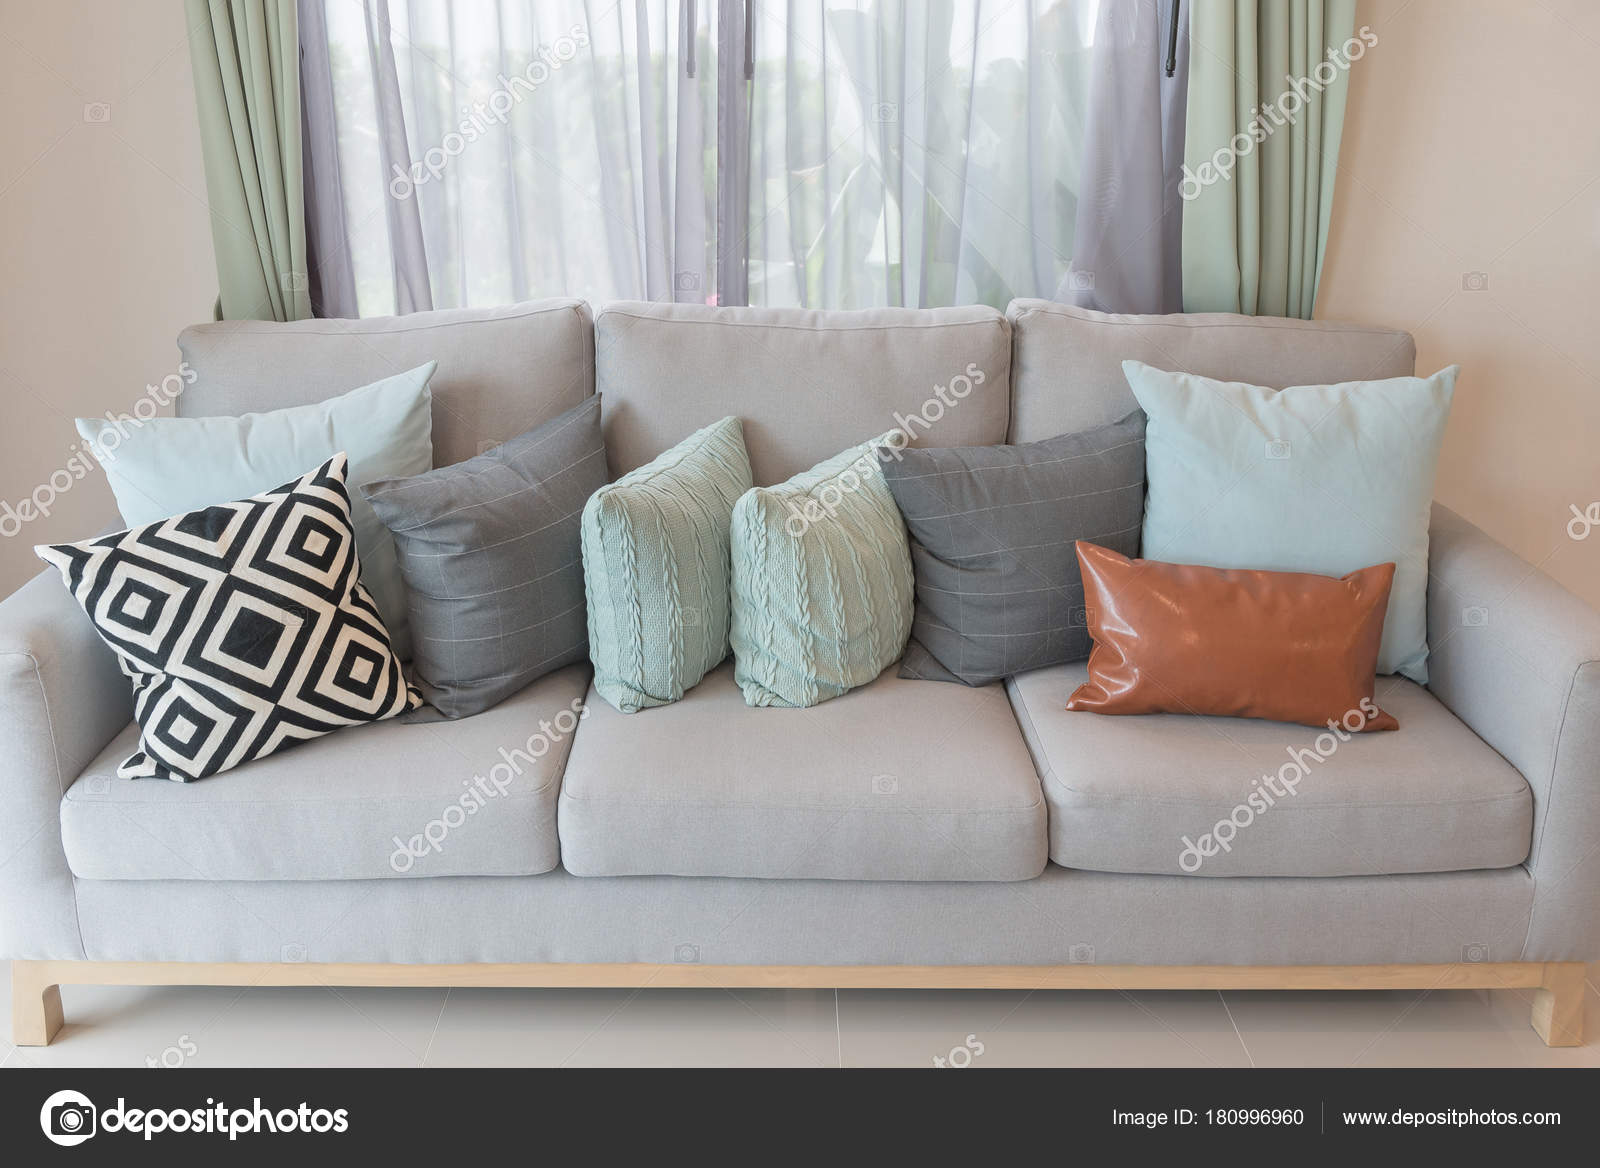 living homes image nice of in room pillows incredible varieties guide style many